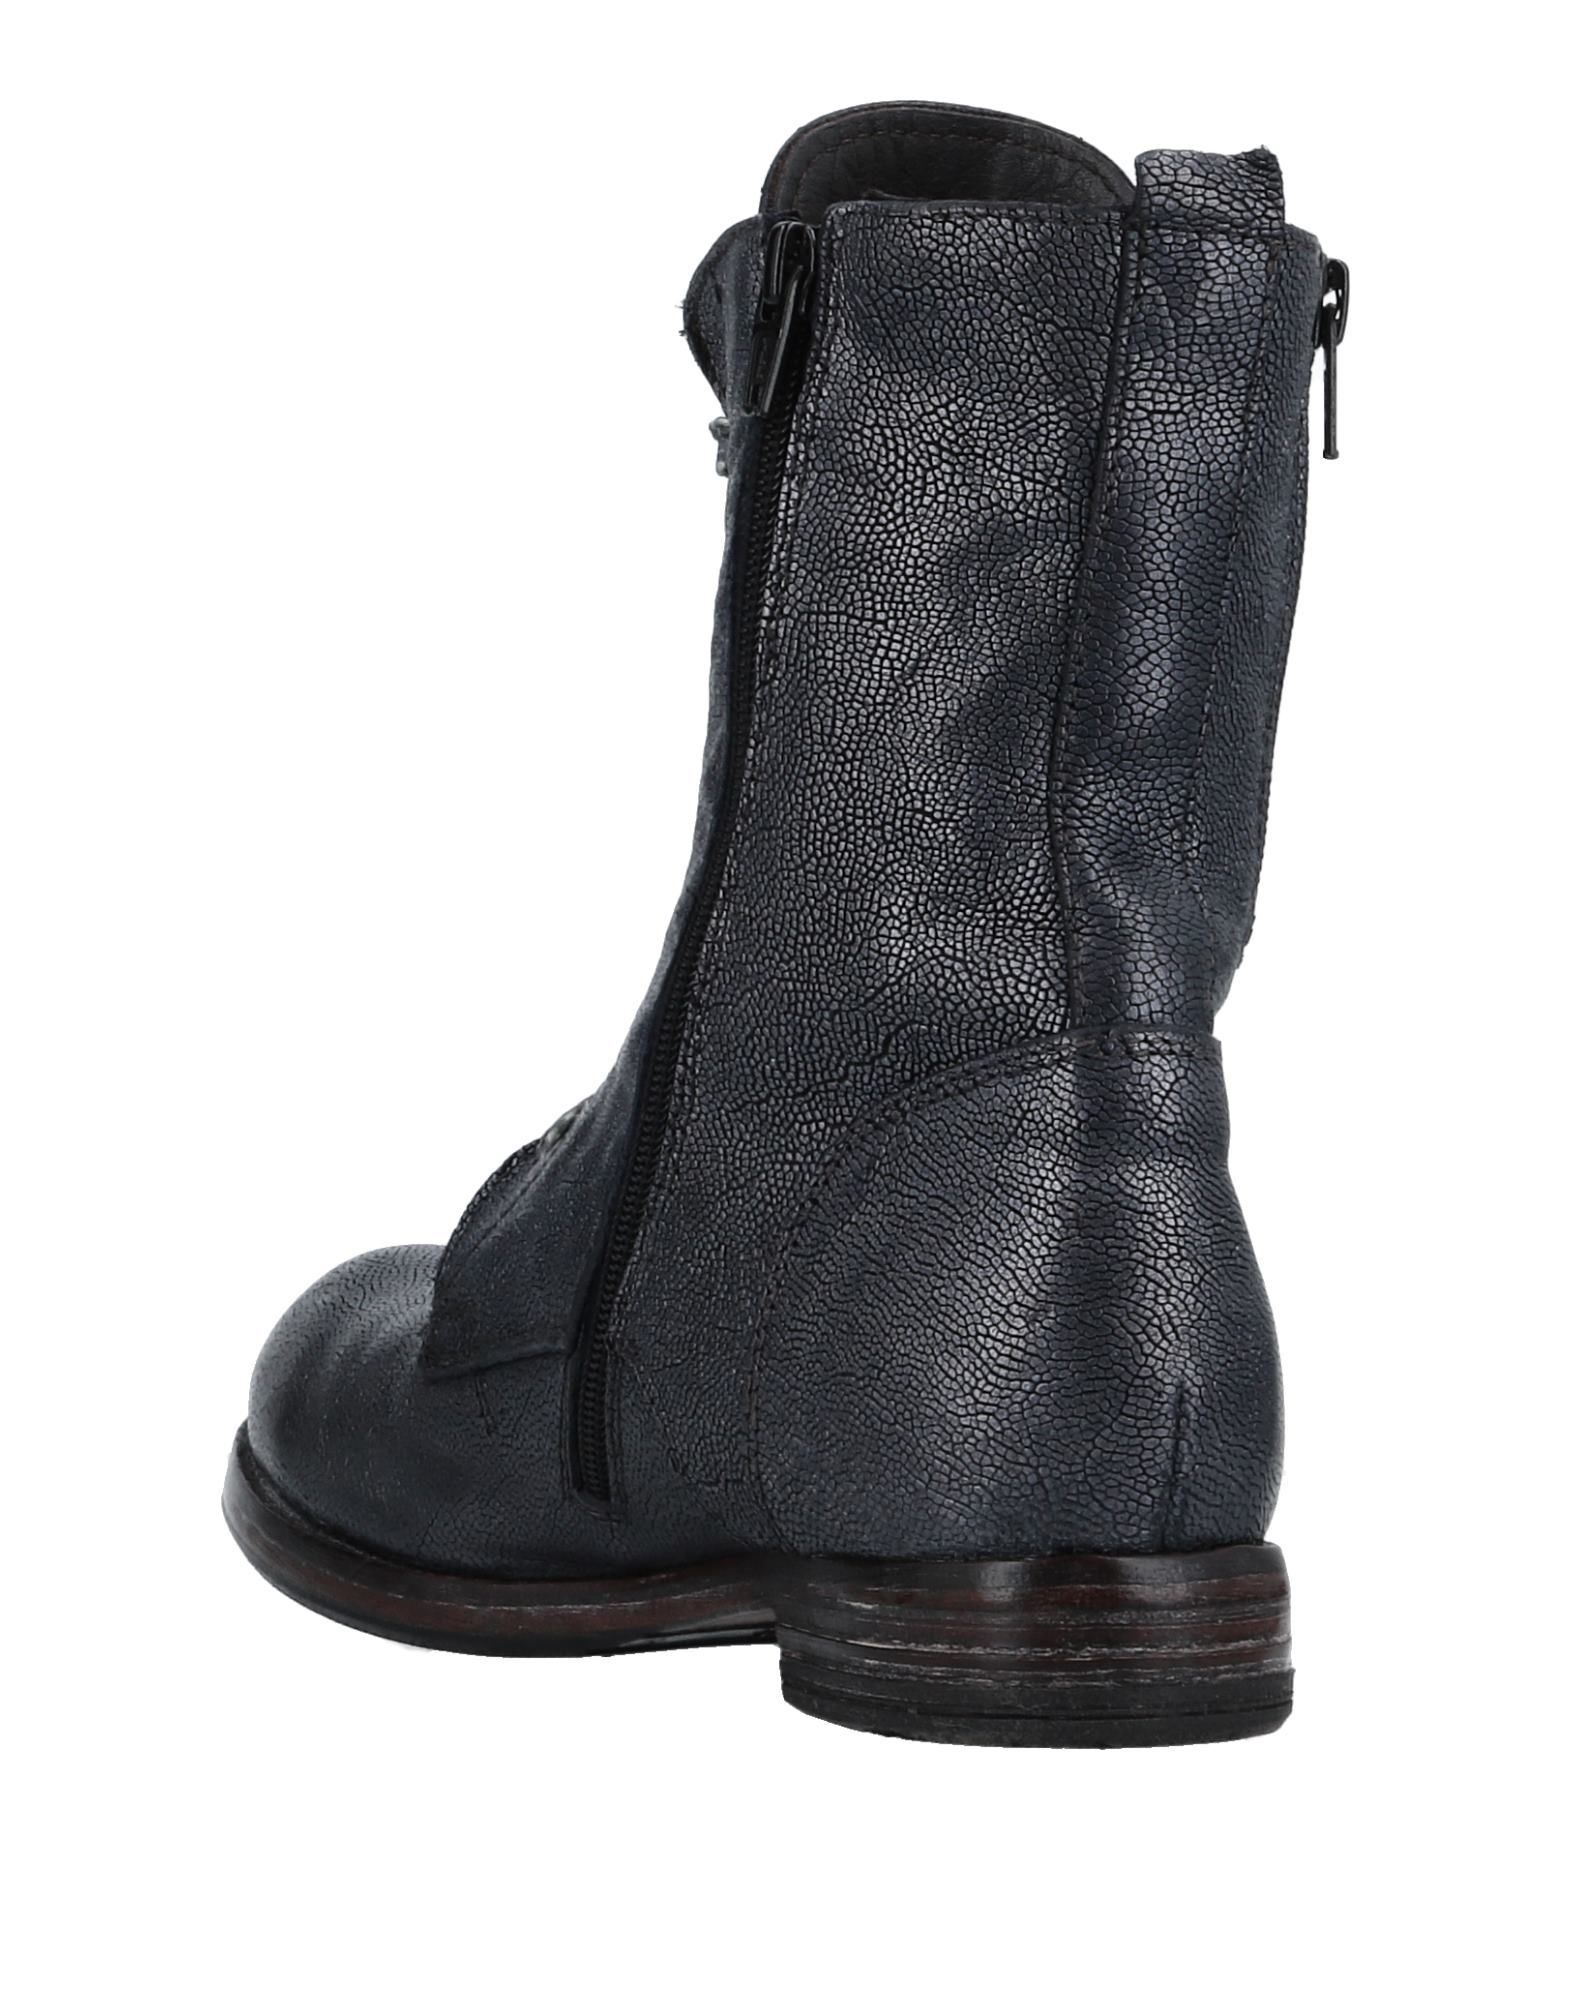 Moma Slate Blue Leather Lace Up Boots